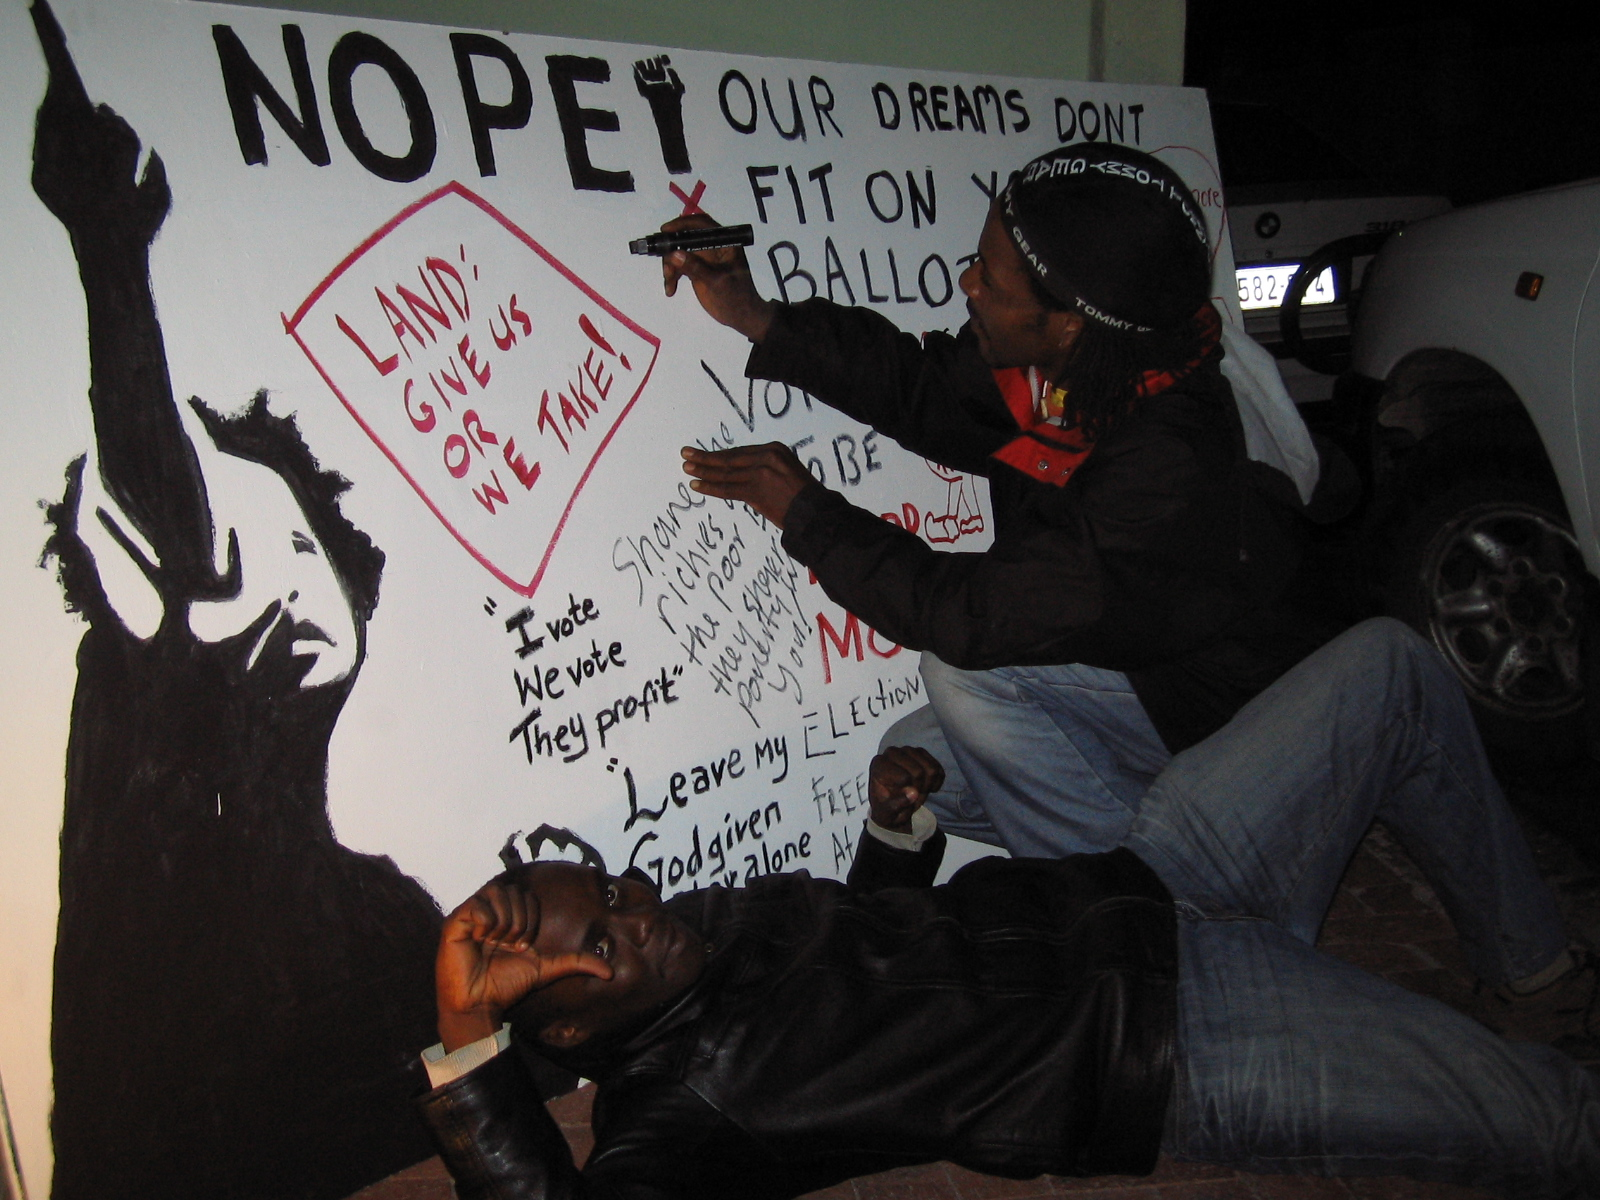 Vrygrond and Kyalitsha Nopesters put their thoughts and desires on the big board